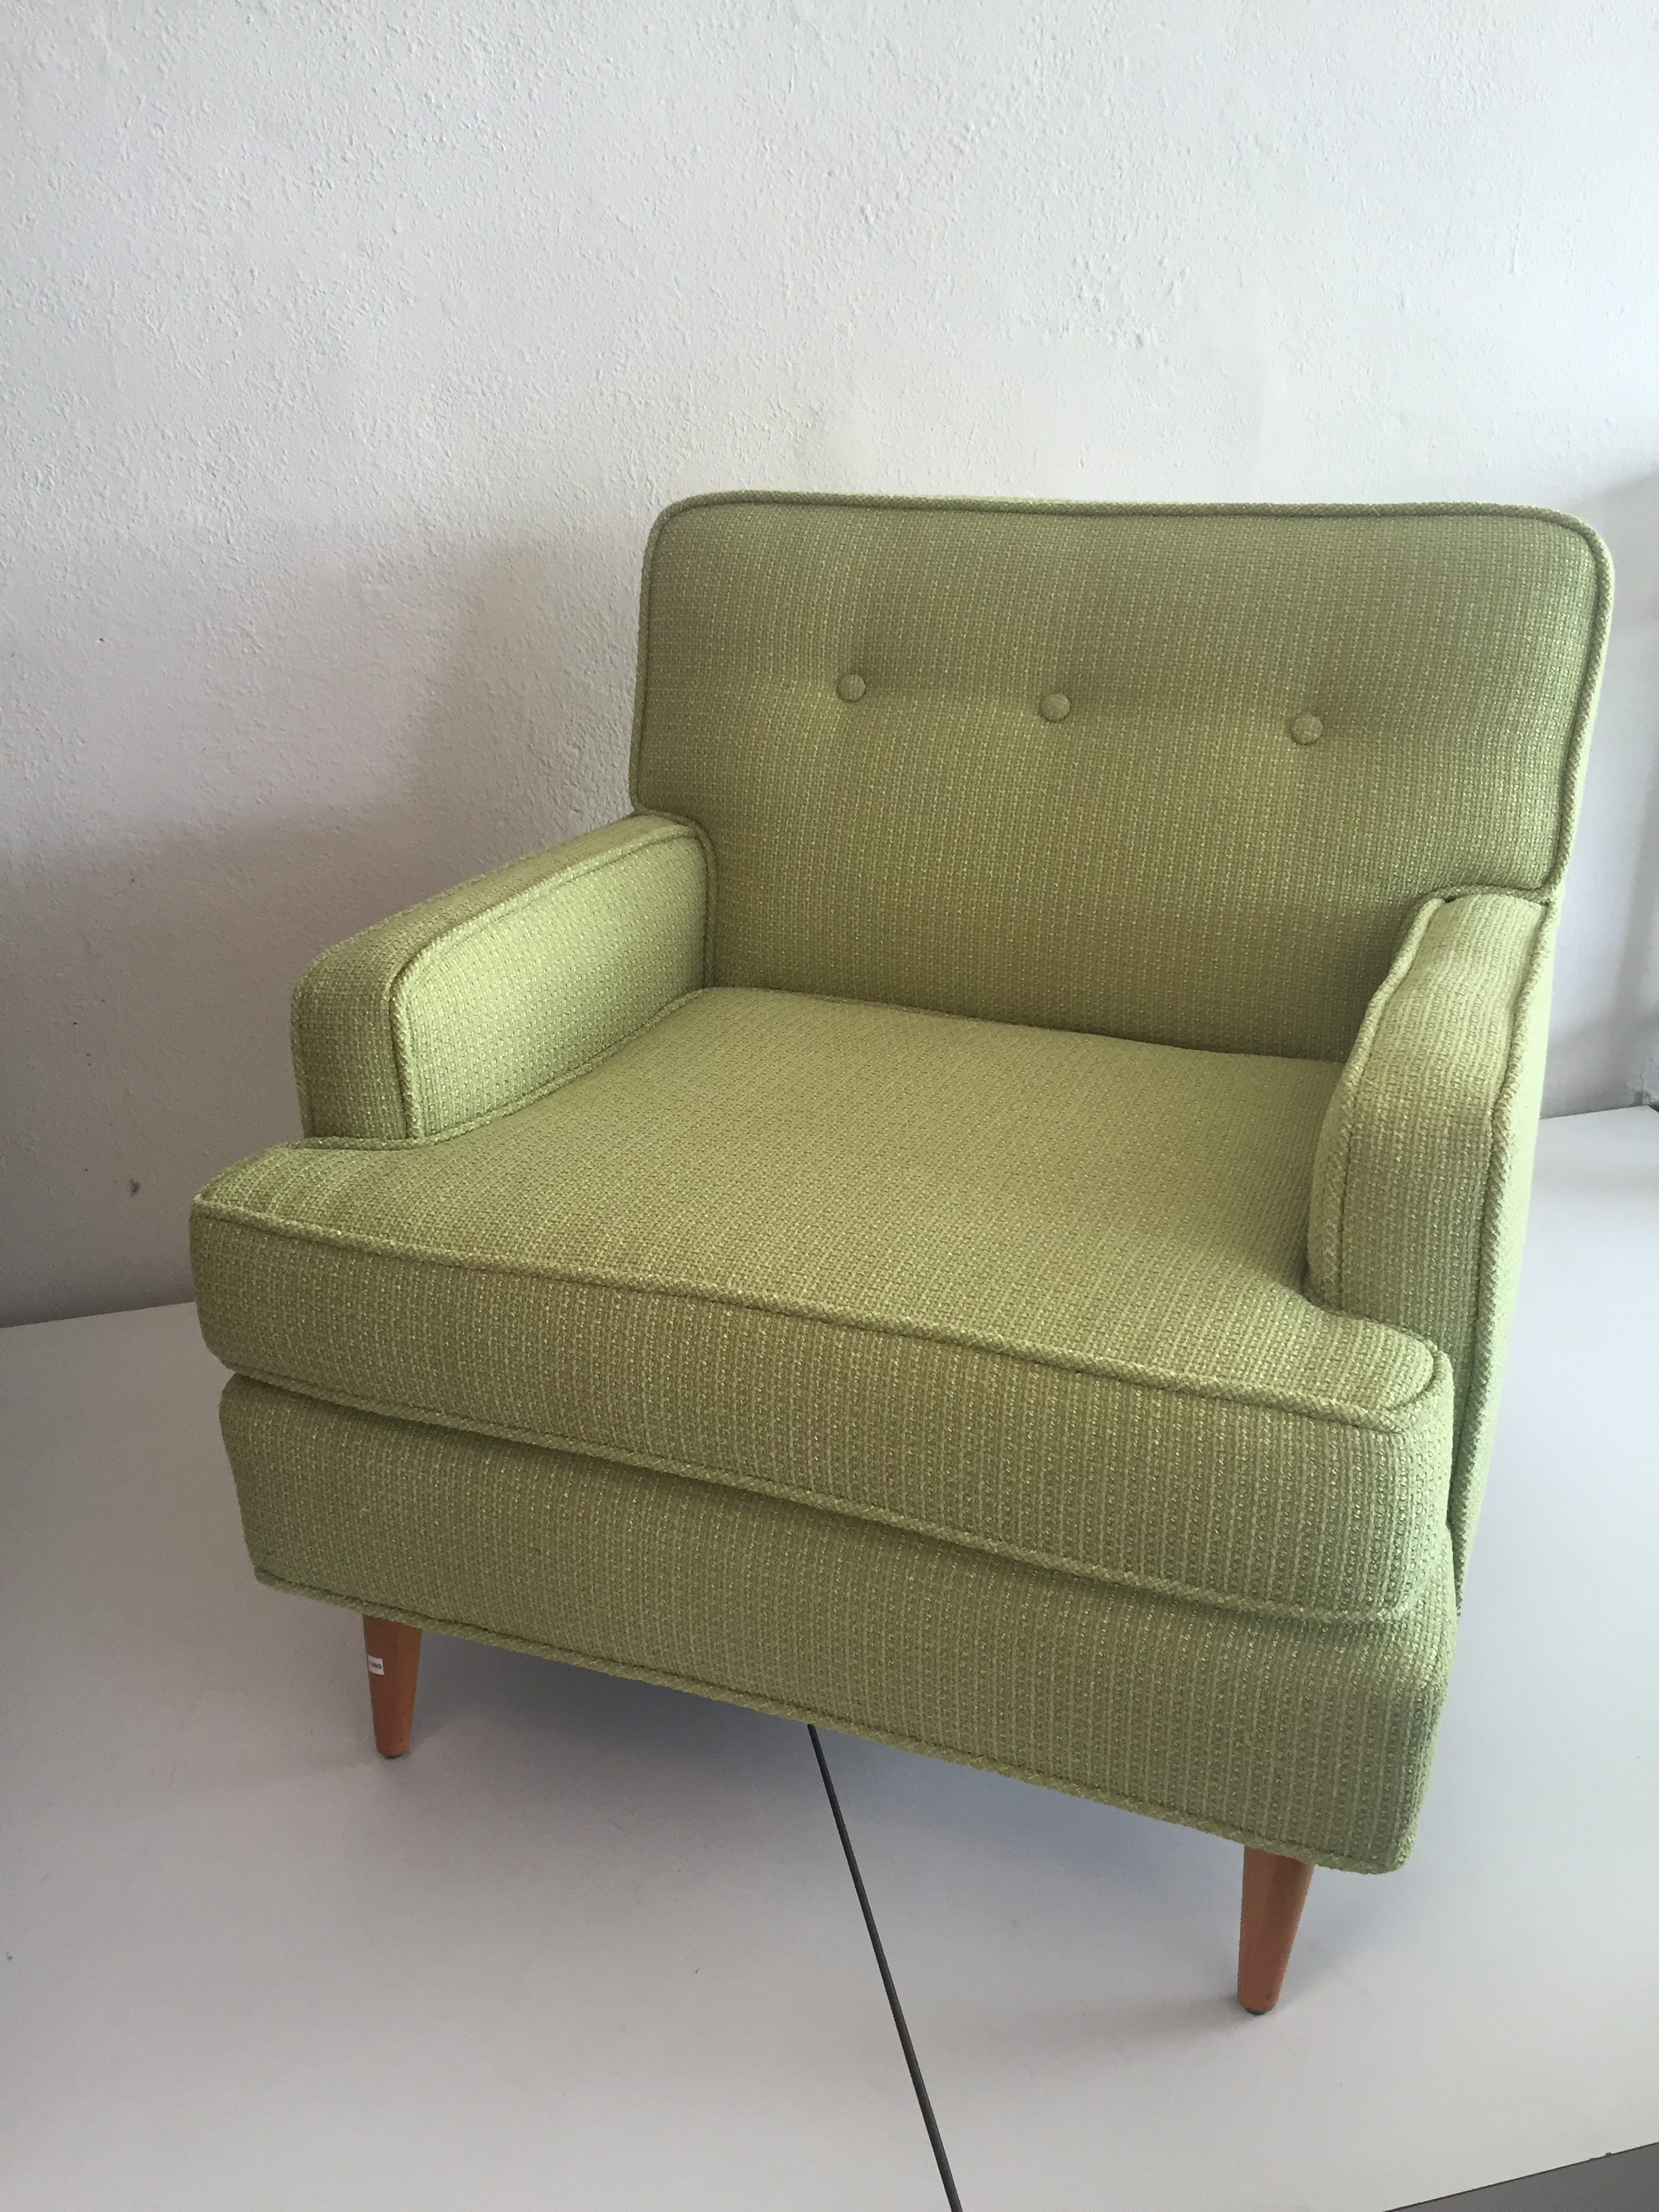 1950s Tufted Chartreuse Club Chair   Image 4 Of 6